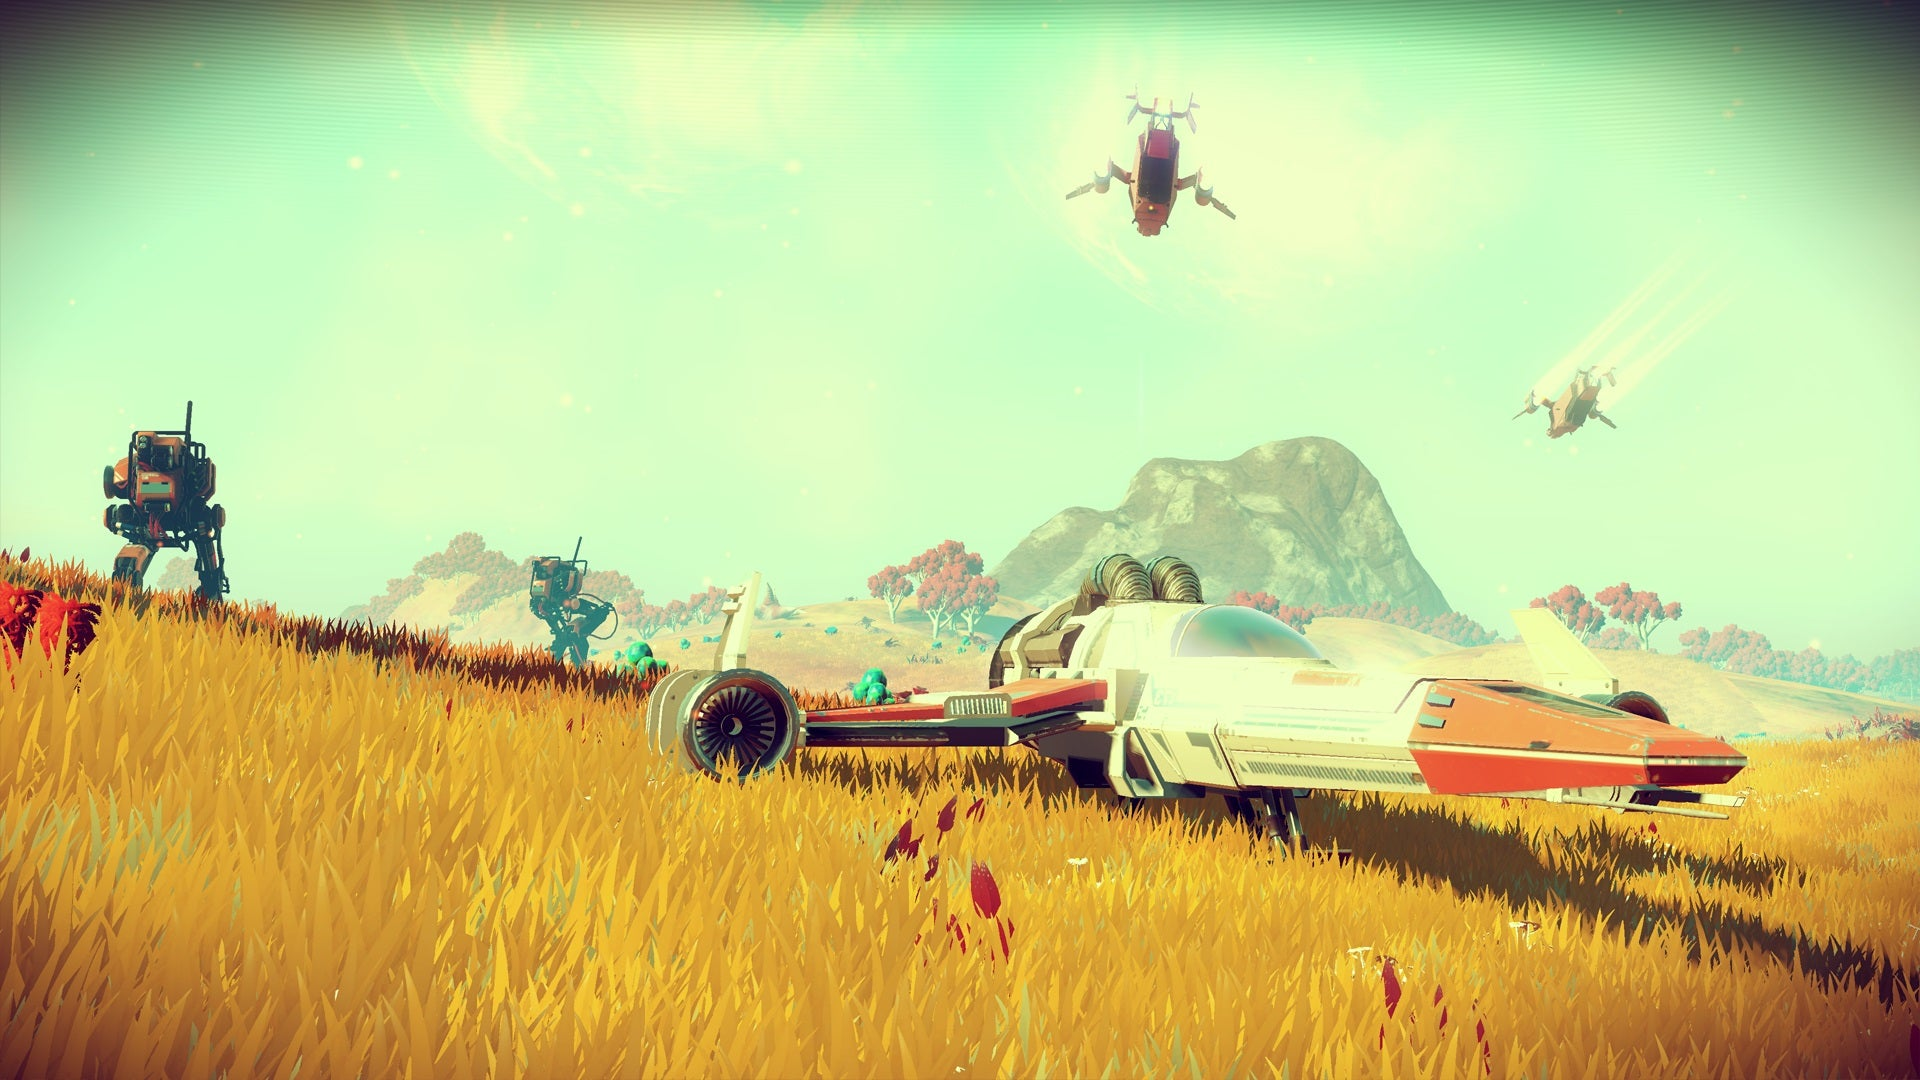 No Man's Sky PC Settings, 4K Screenshots Revealed